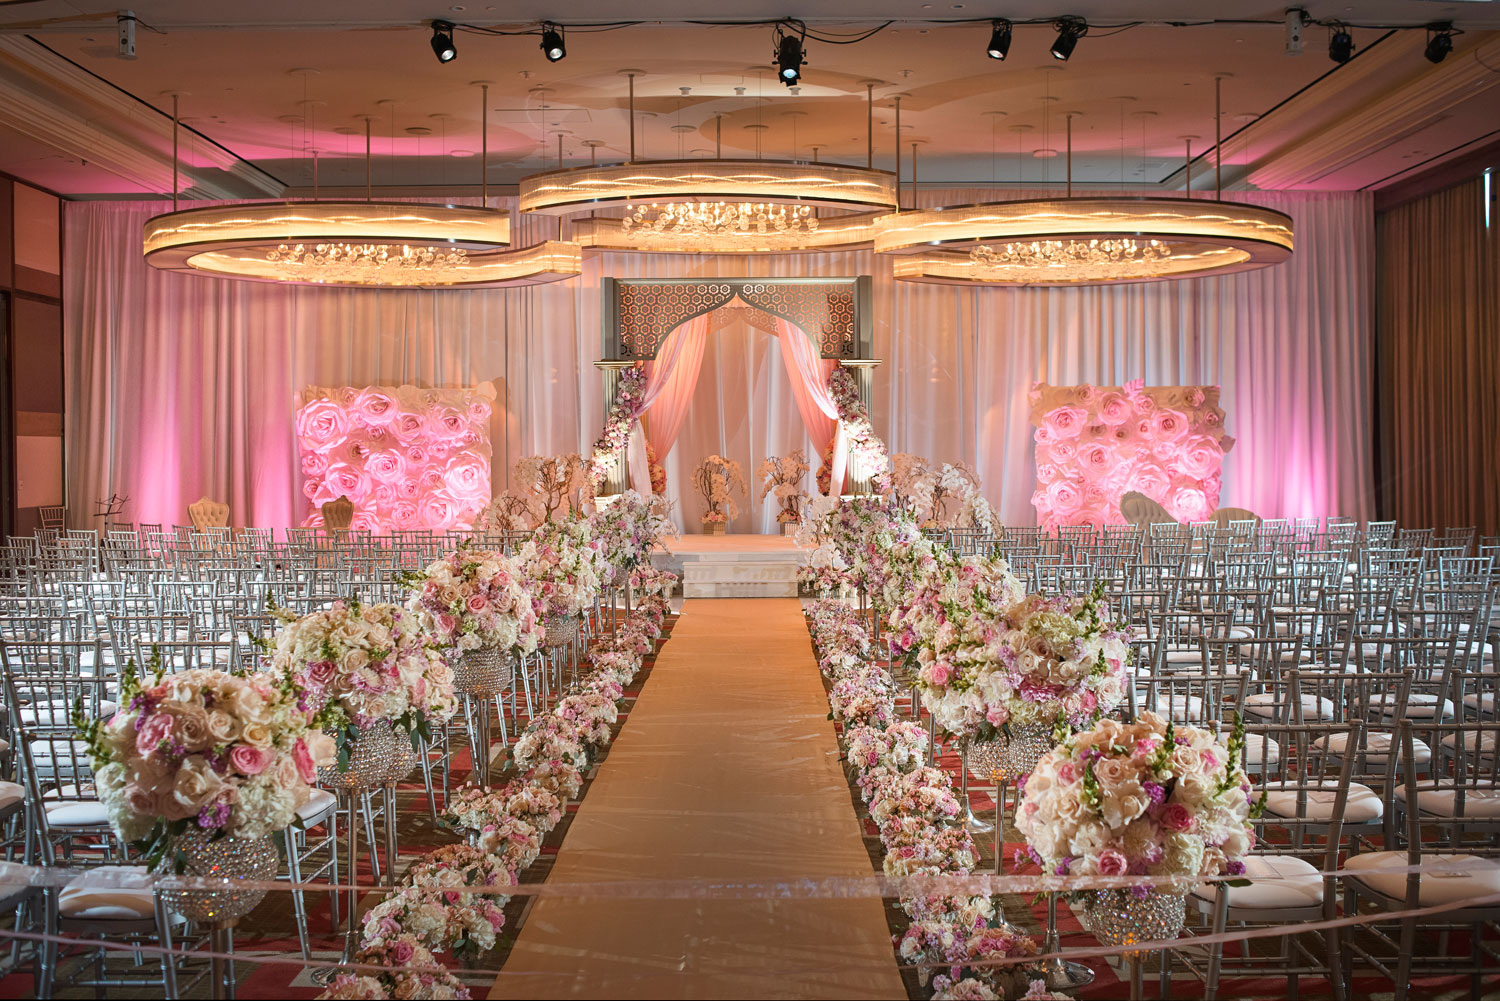 Wedding ceremony drapery ballroom las vegas wedding andrea eppolito events